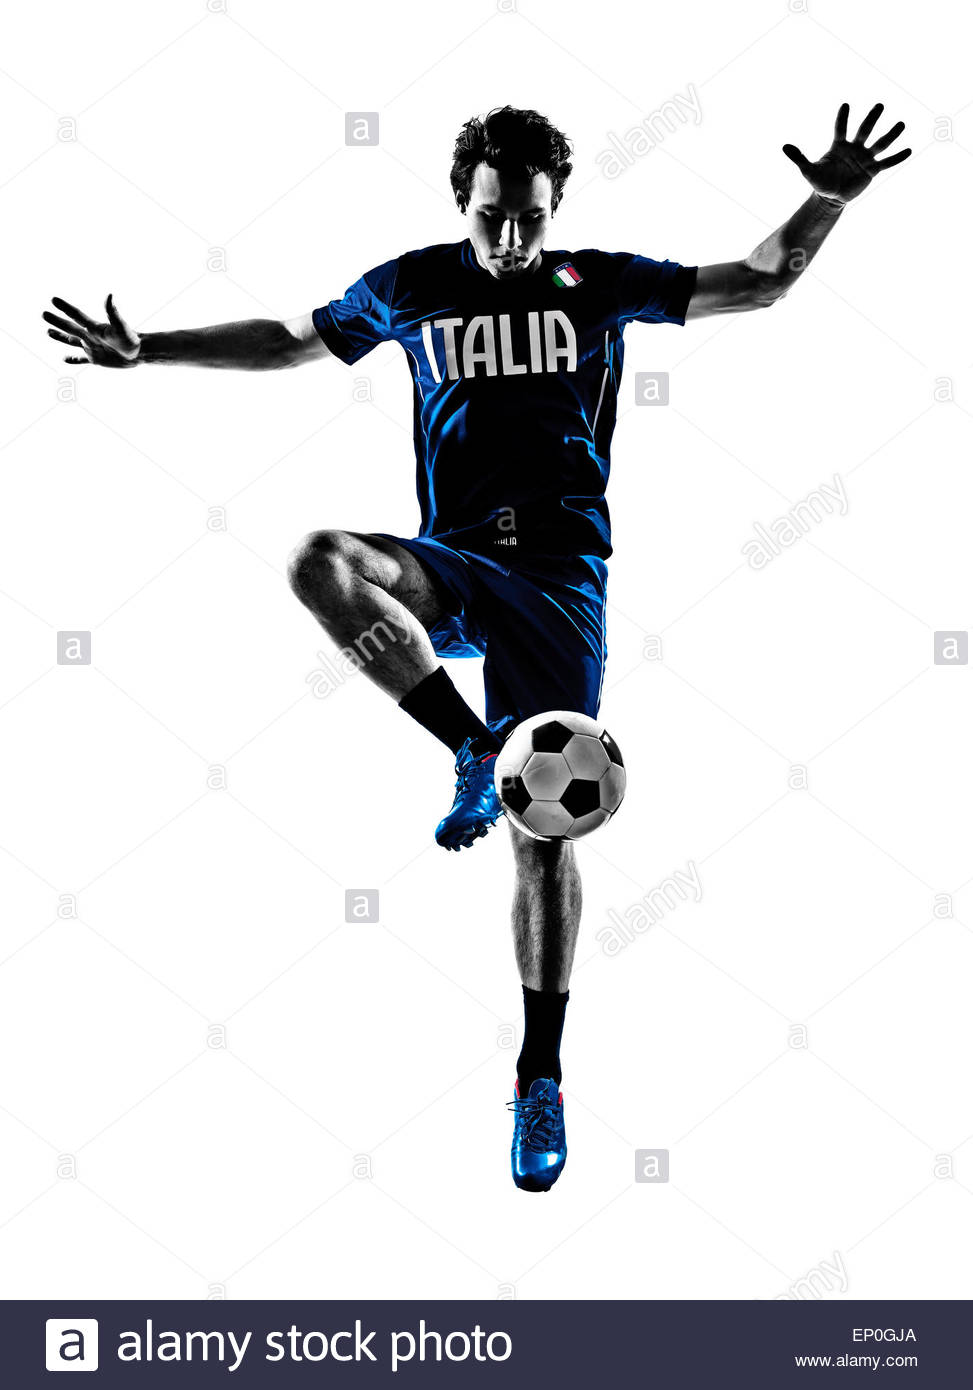 973x1390 Italian Soccer Player Stock Photos Amp Italian Soccer Player Stock